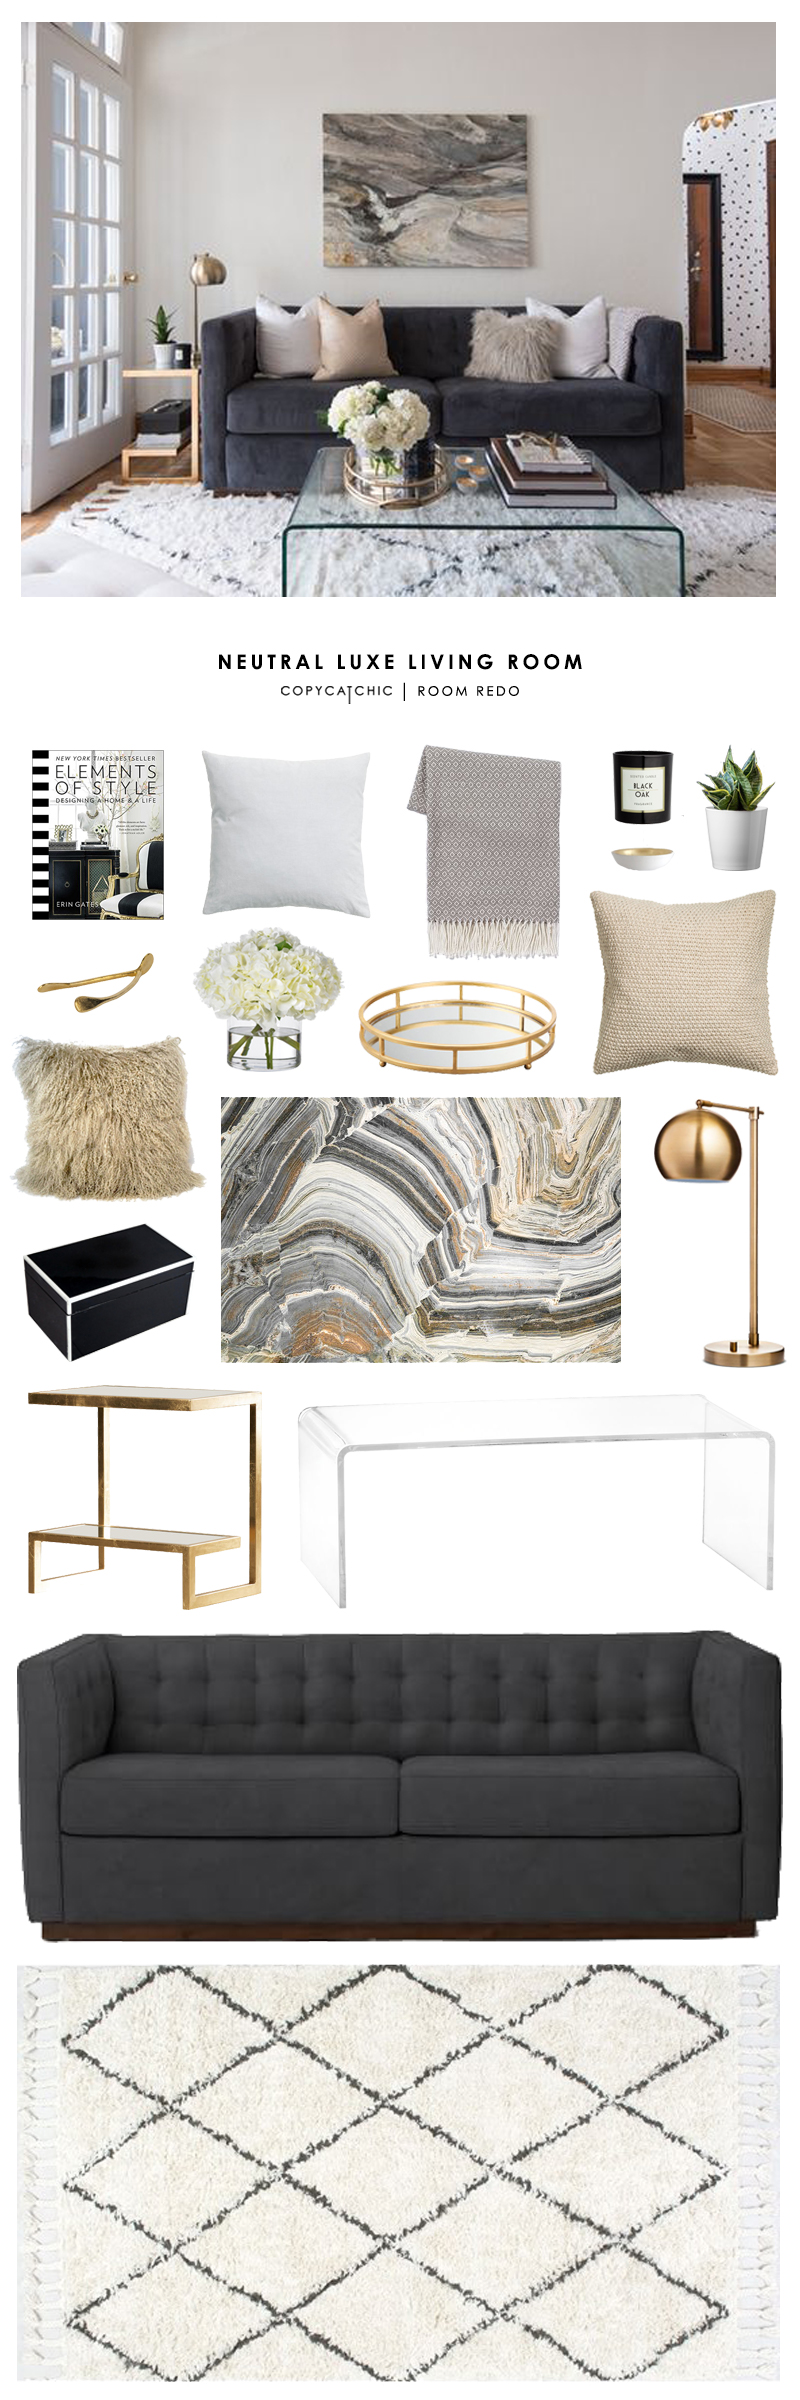 Copy Cat Chic Room Redo Neutral Luxe Living Room Copy Cat Chic Bloglovin